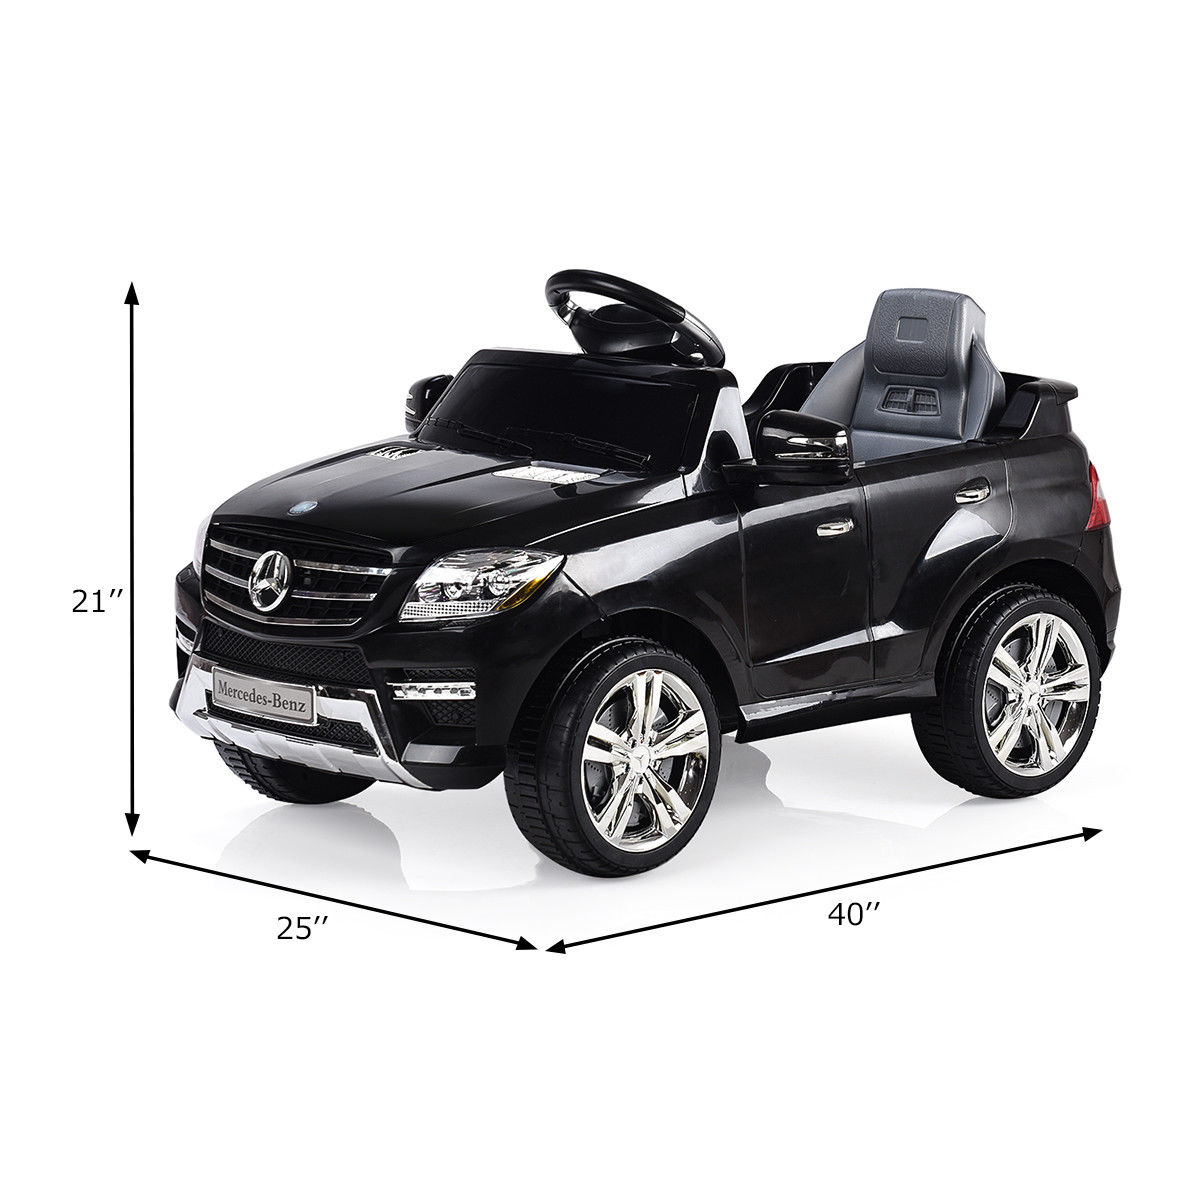 Costway Mercedes Benz Ml350 6v Electric Kids Ride On Car Licensed Mp3 Rc Remote Control 1